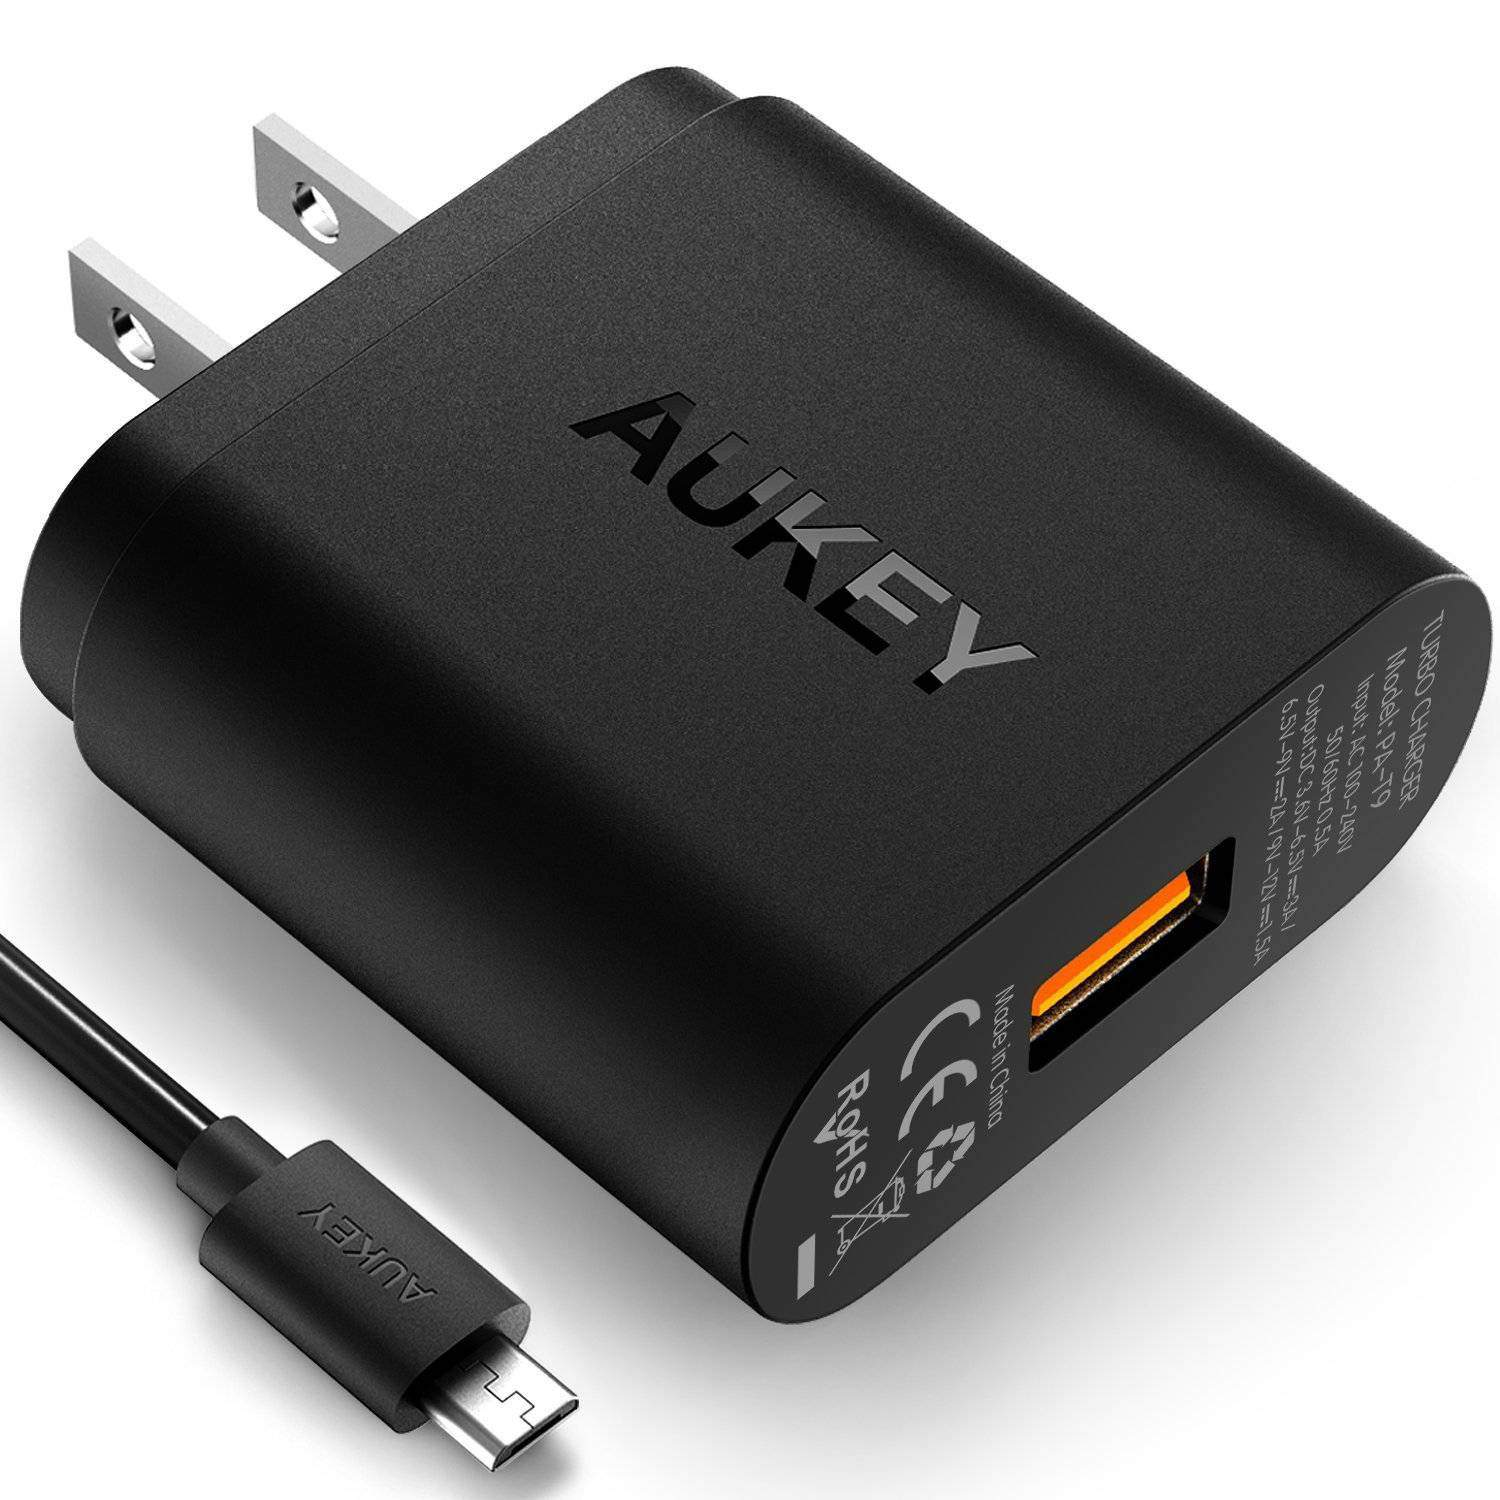 Aukey deal